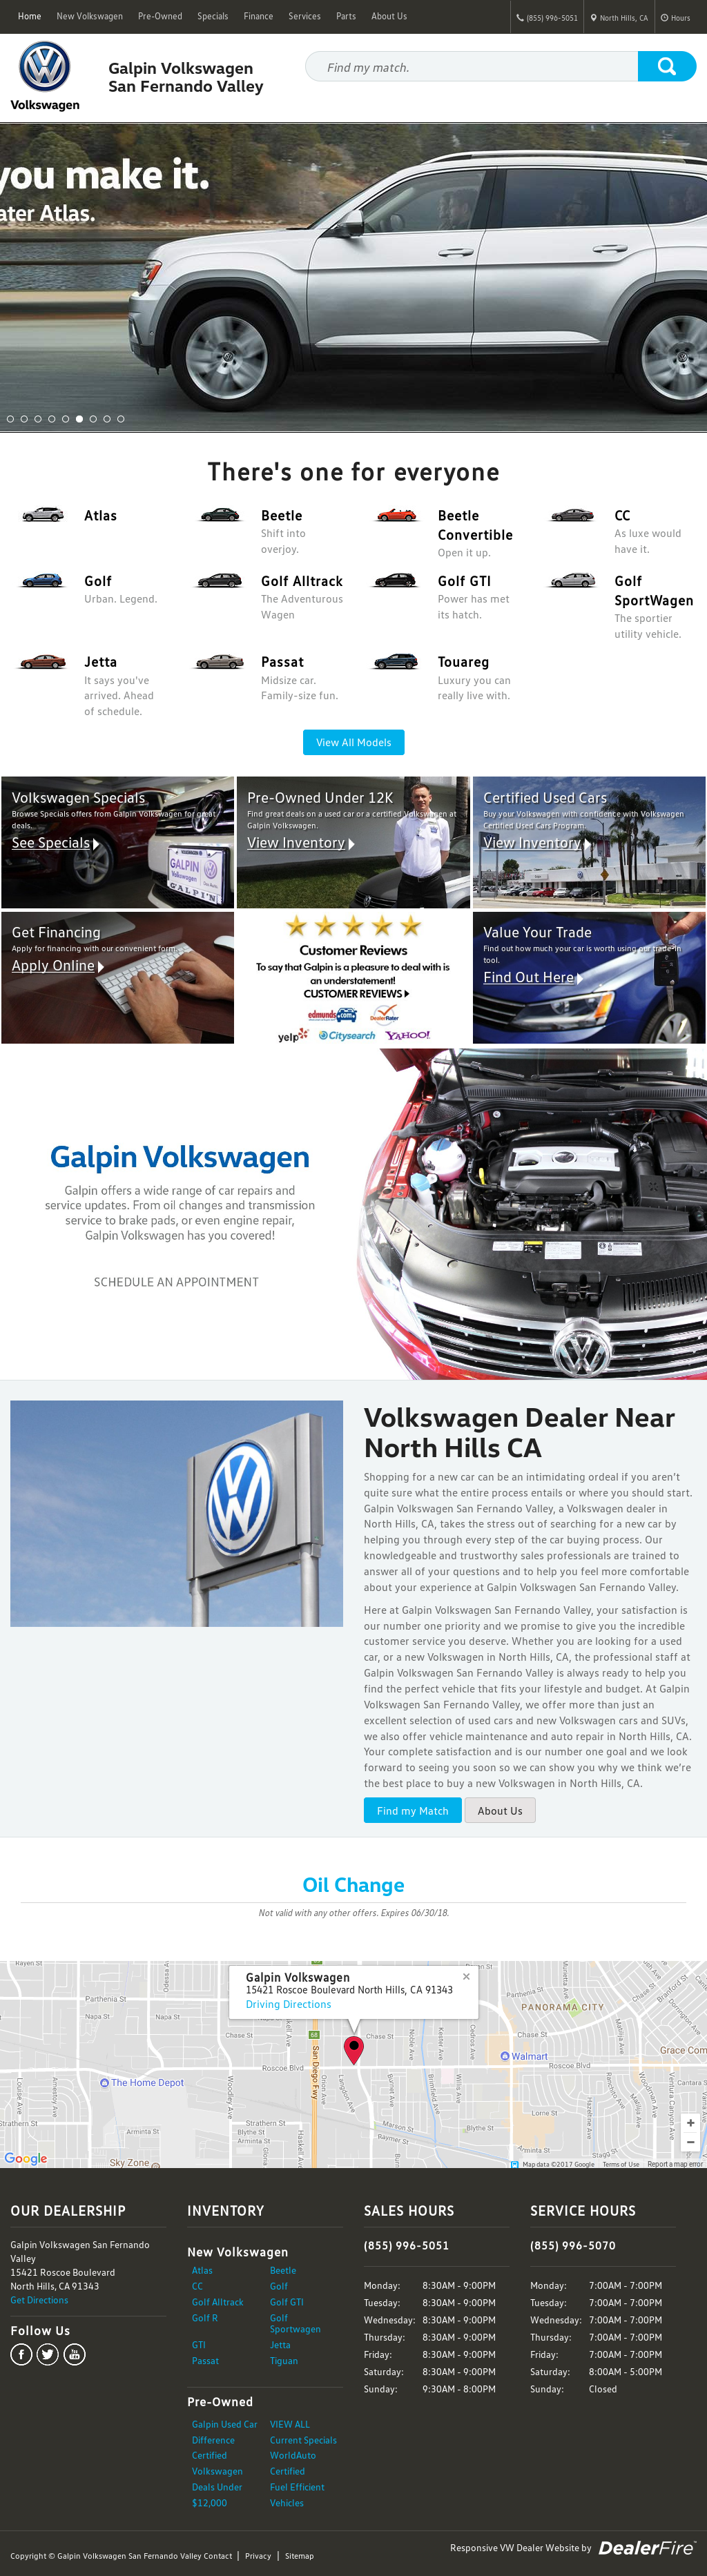 Galpin Volkswagen petitors Revenue and Employees Owler pany